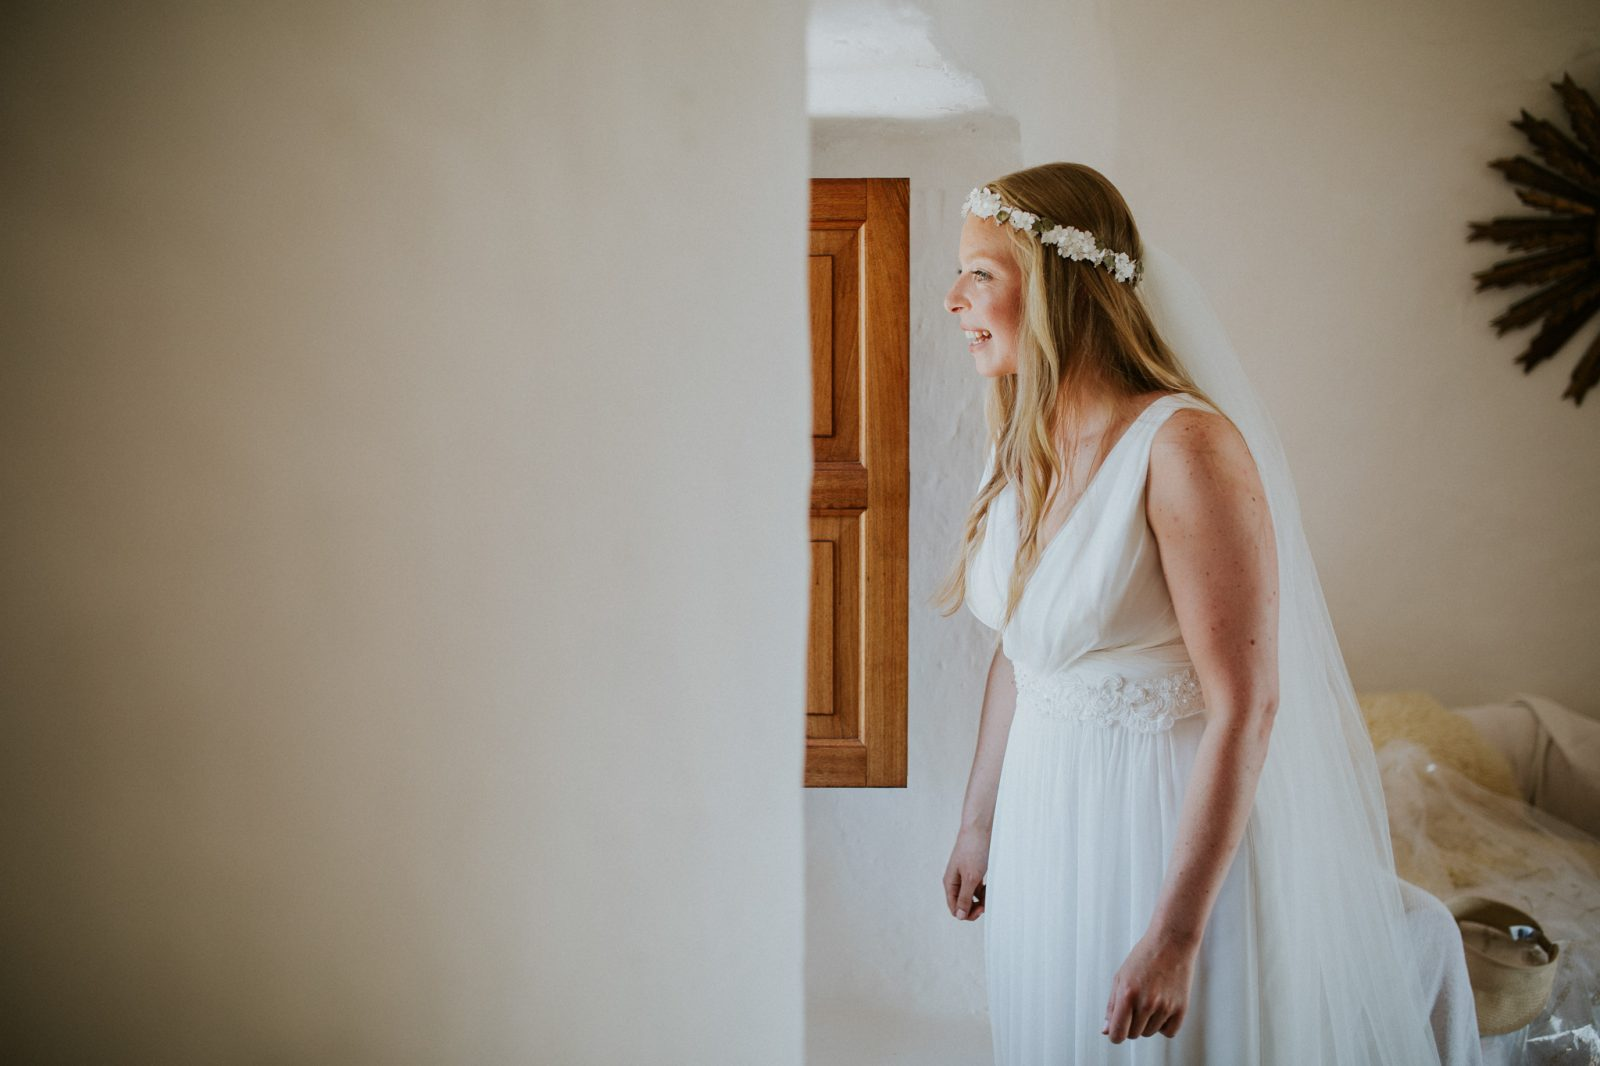 Bride looking out of window - getting married in Mallorca on a budget